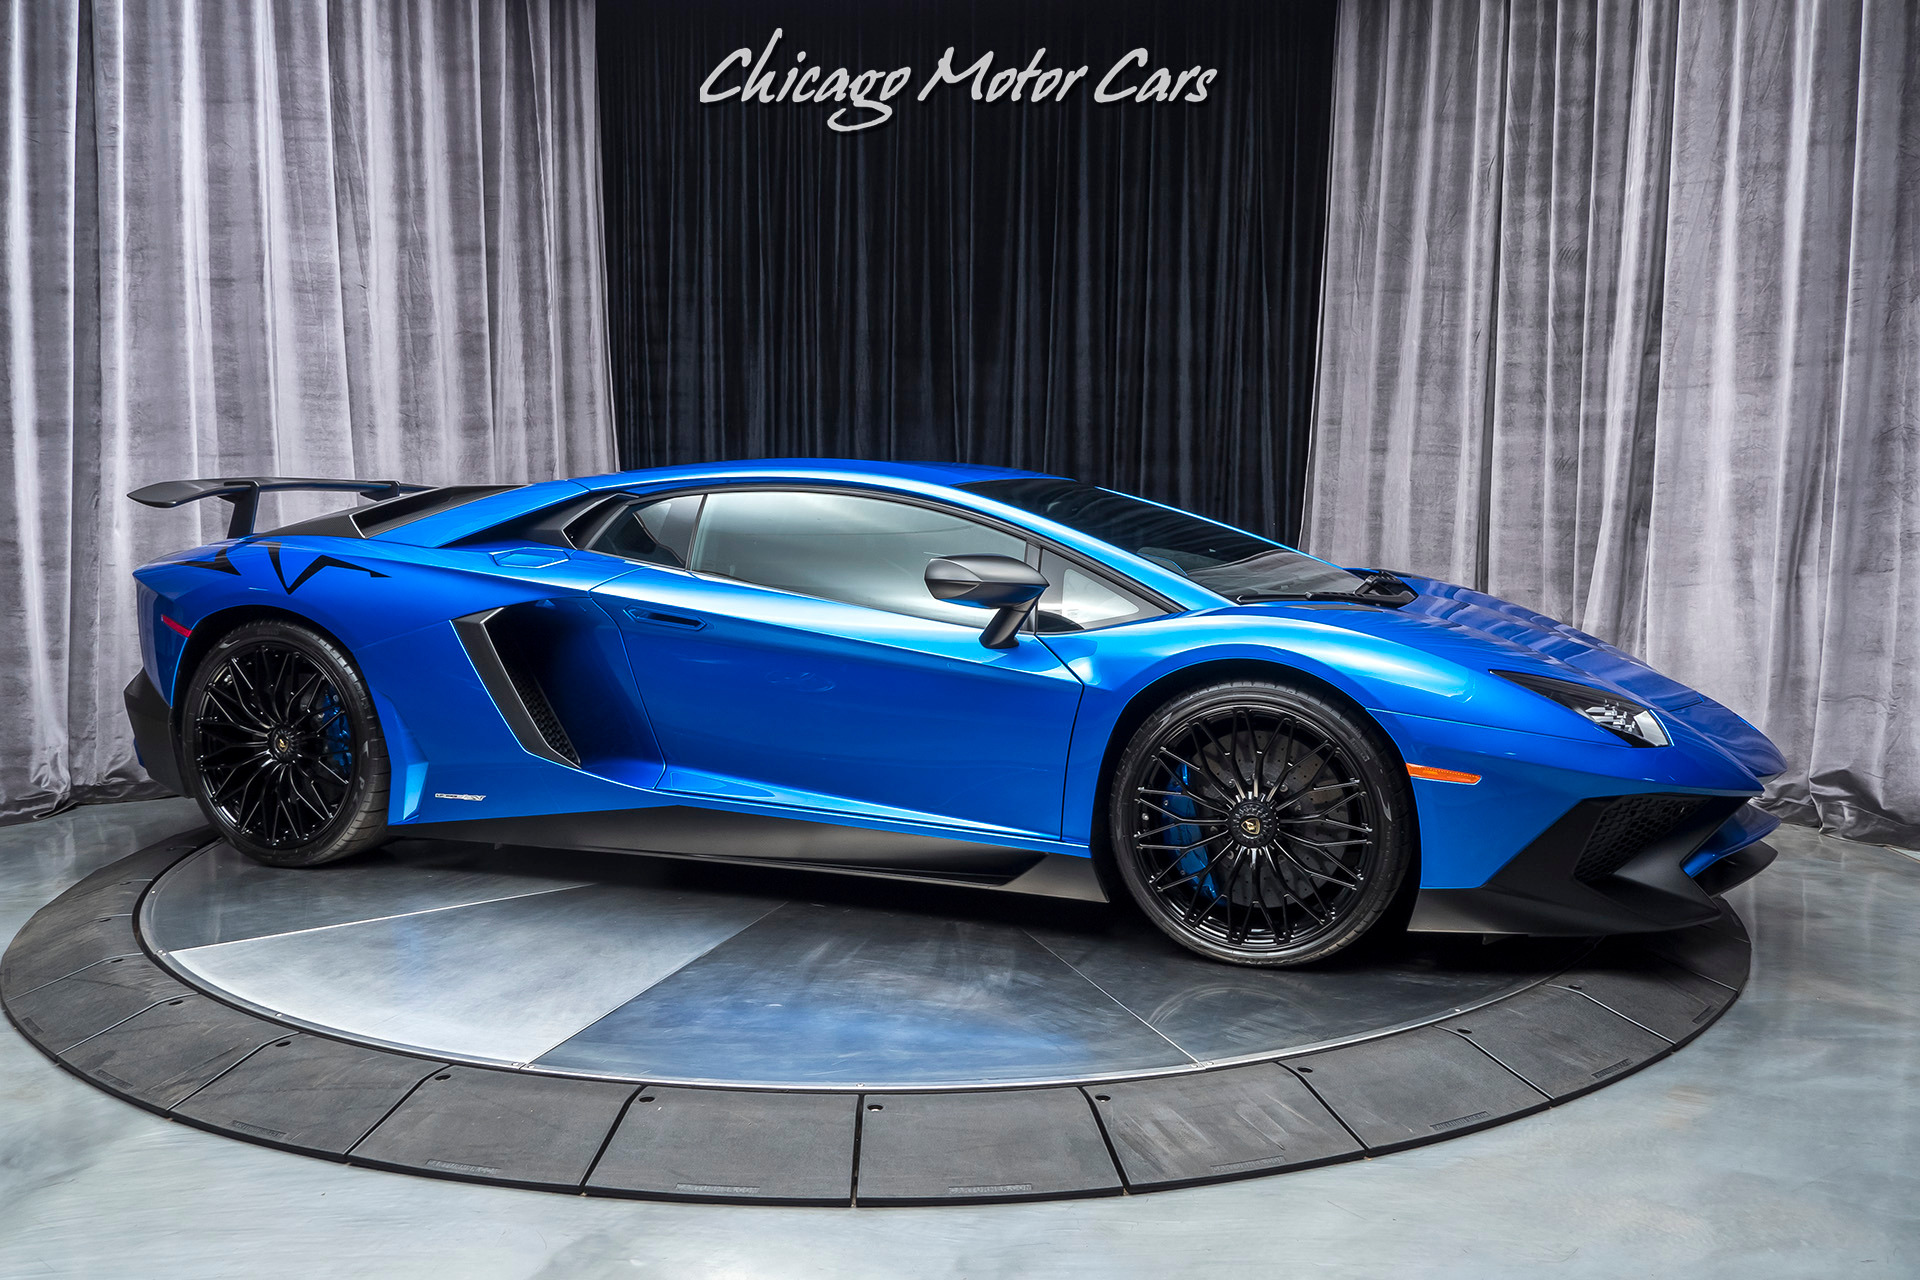 Used-2016-Lamborghini-Aventador-LP825-4-SV-Only-2k-Miles-FACTORY-POWER-PACKAGE---RACING-EXHAUST